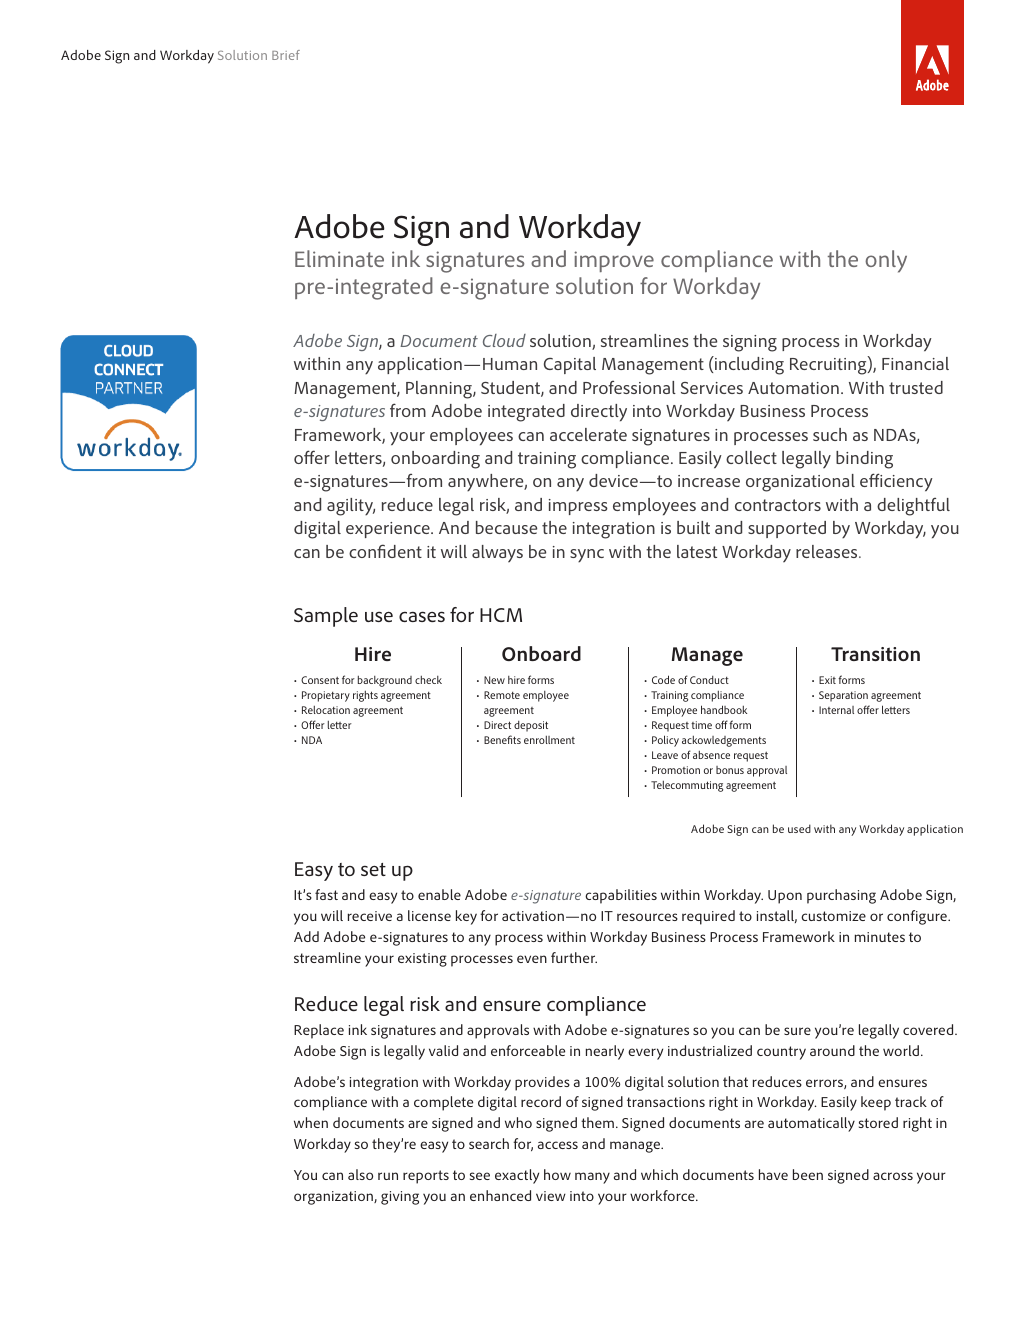 Solution Brief: Adobe Sign and Workday Integration